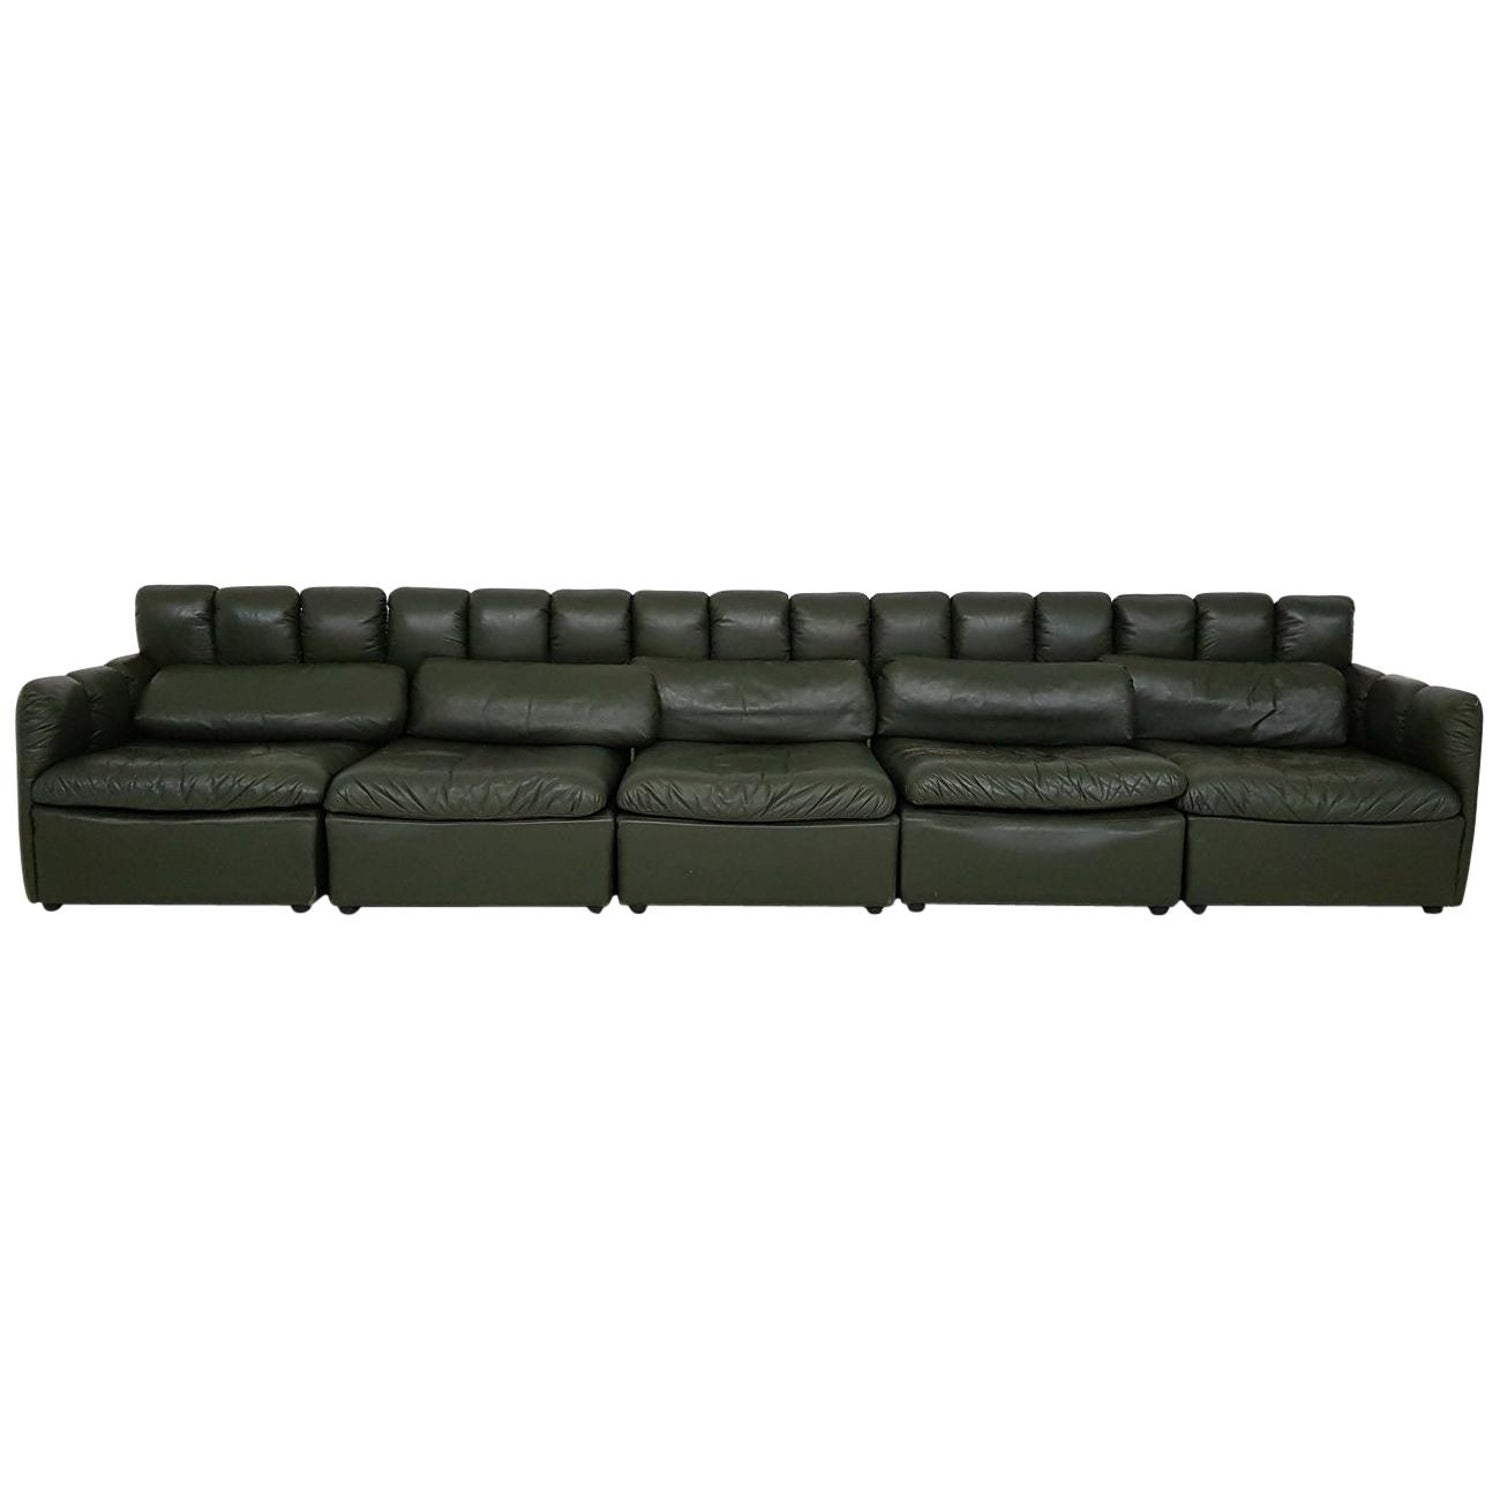 Large De Sede Style Dark Green Leather Modular Sofa Germany 1960 S At 1stdibs